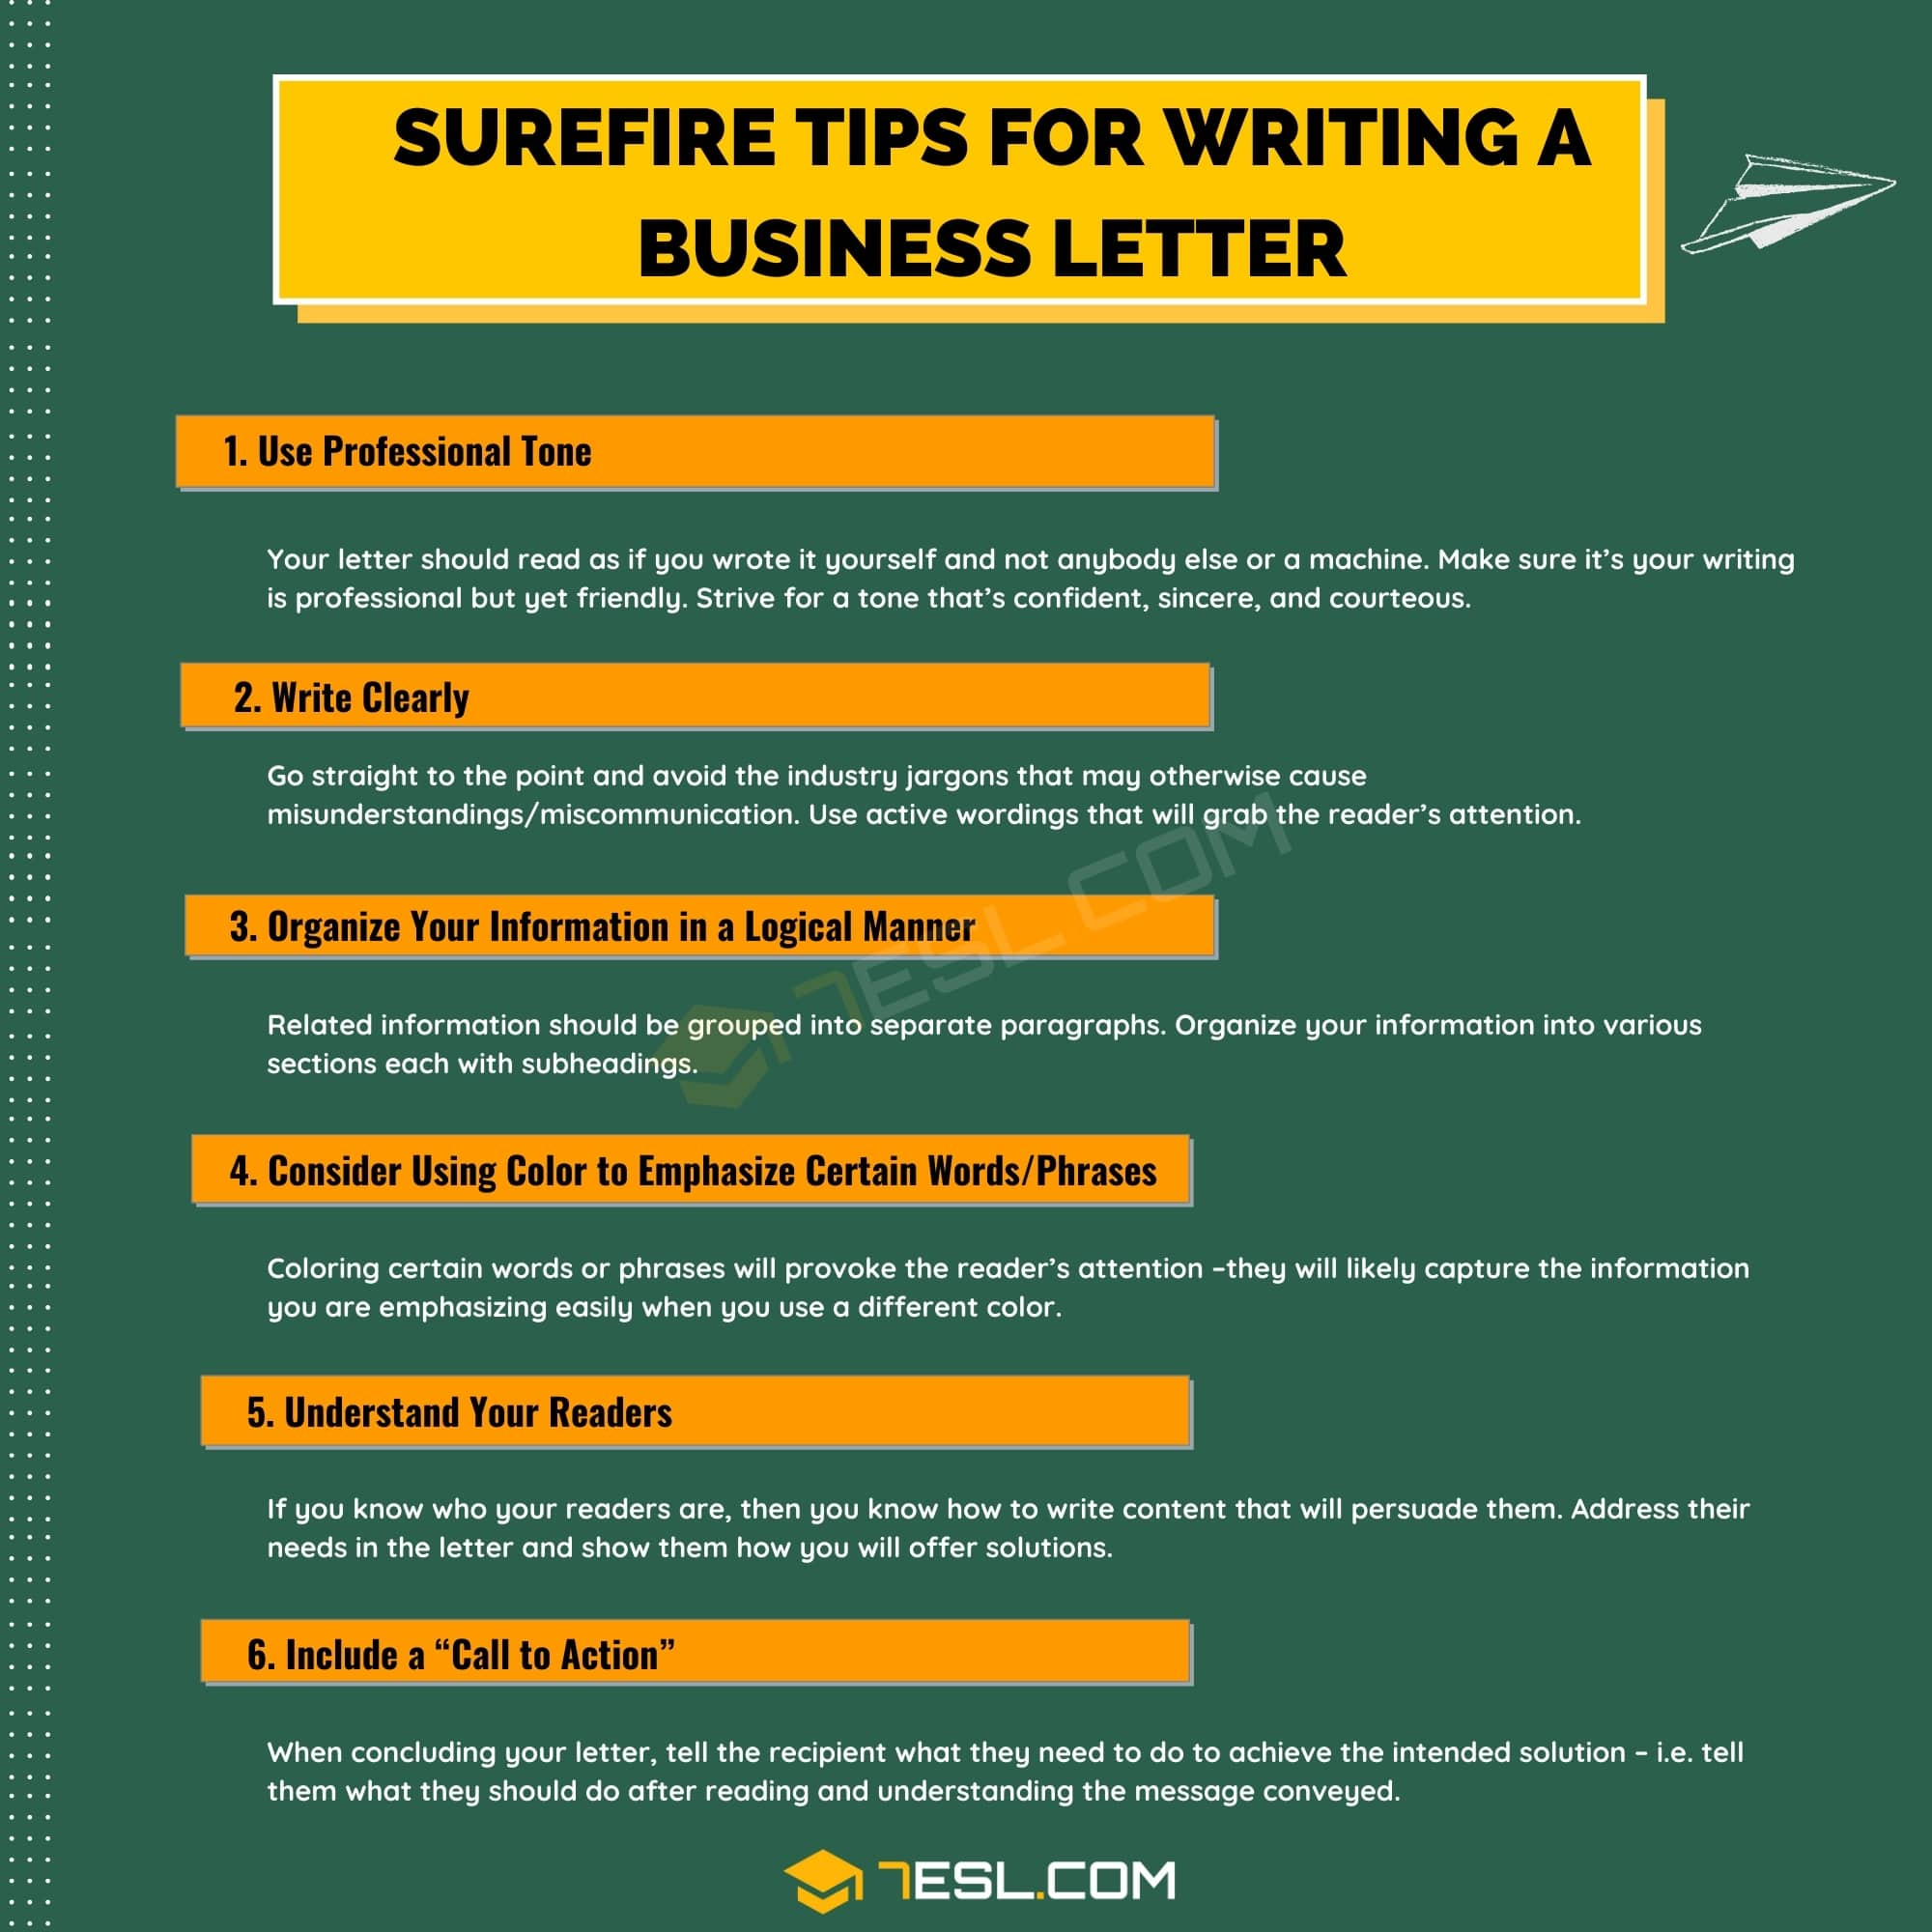 Surefire Tips for Writing a Business Letter